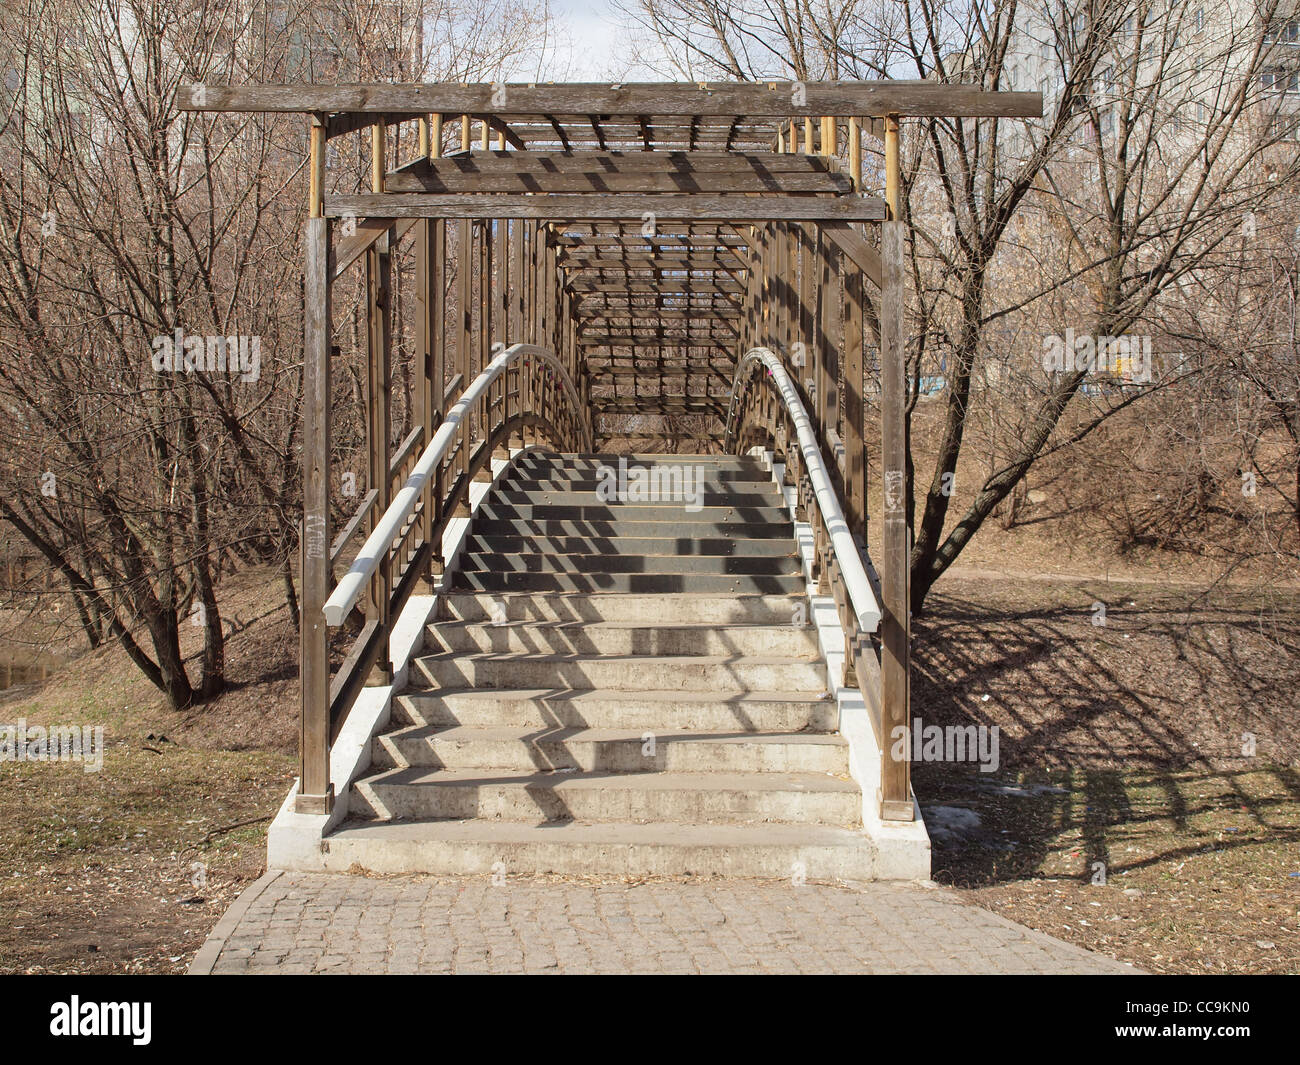 The humpbacked bridge thrown through small river in old park. - Stock Image